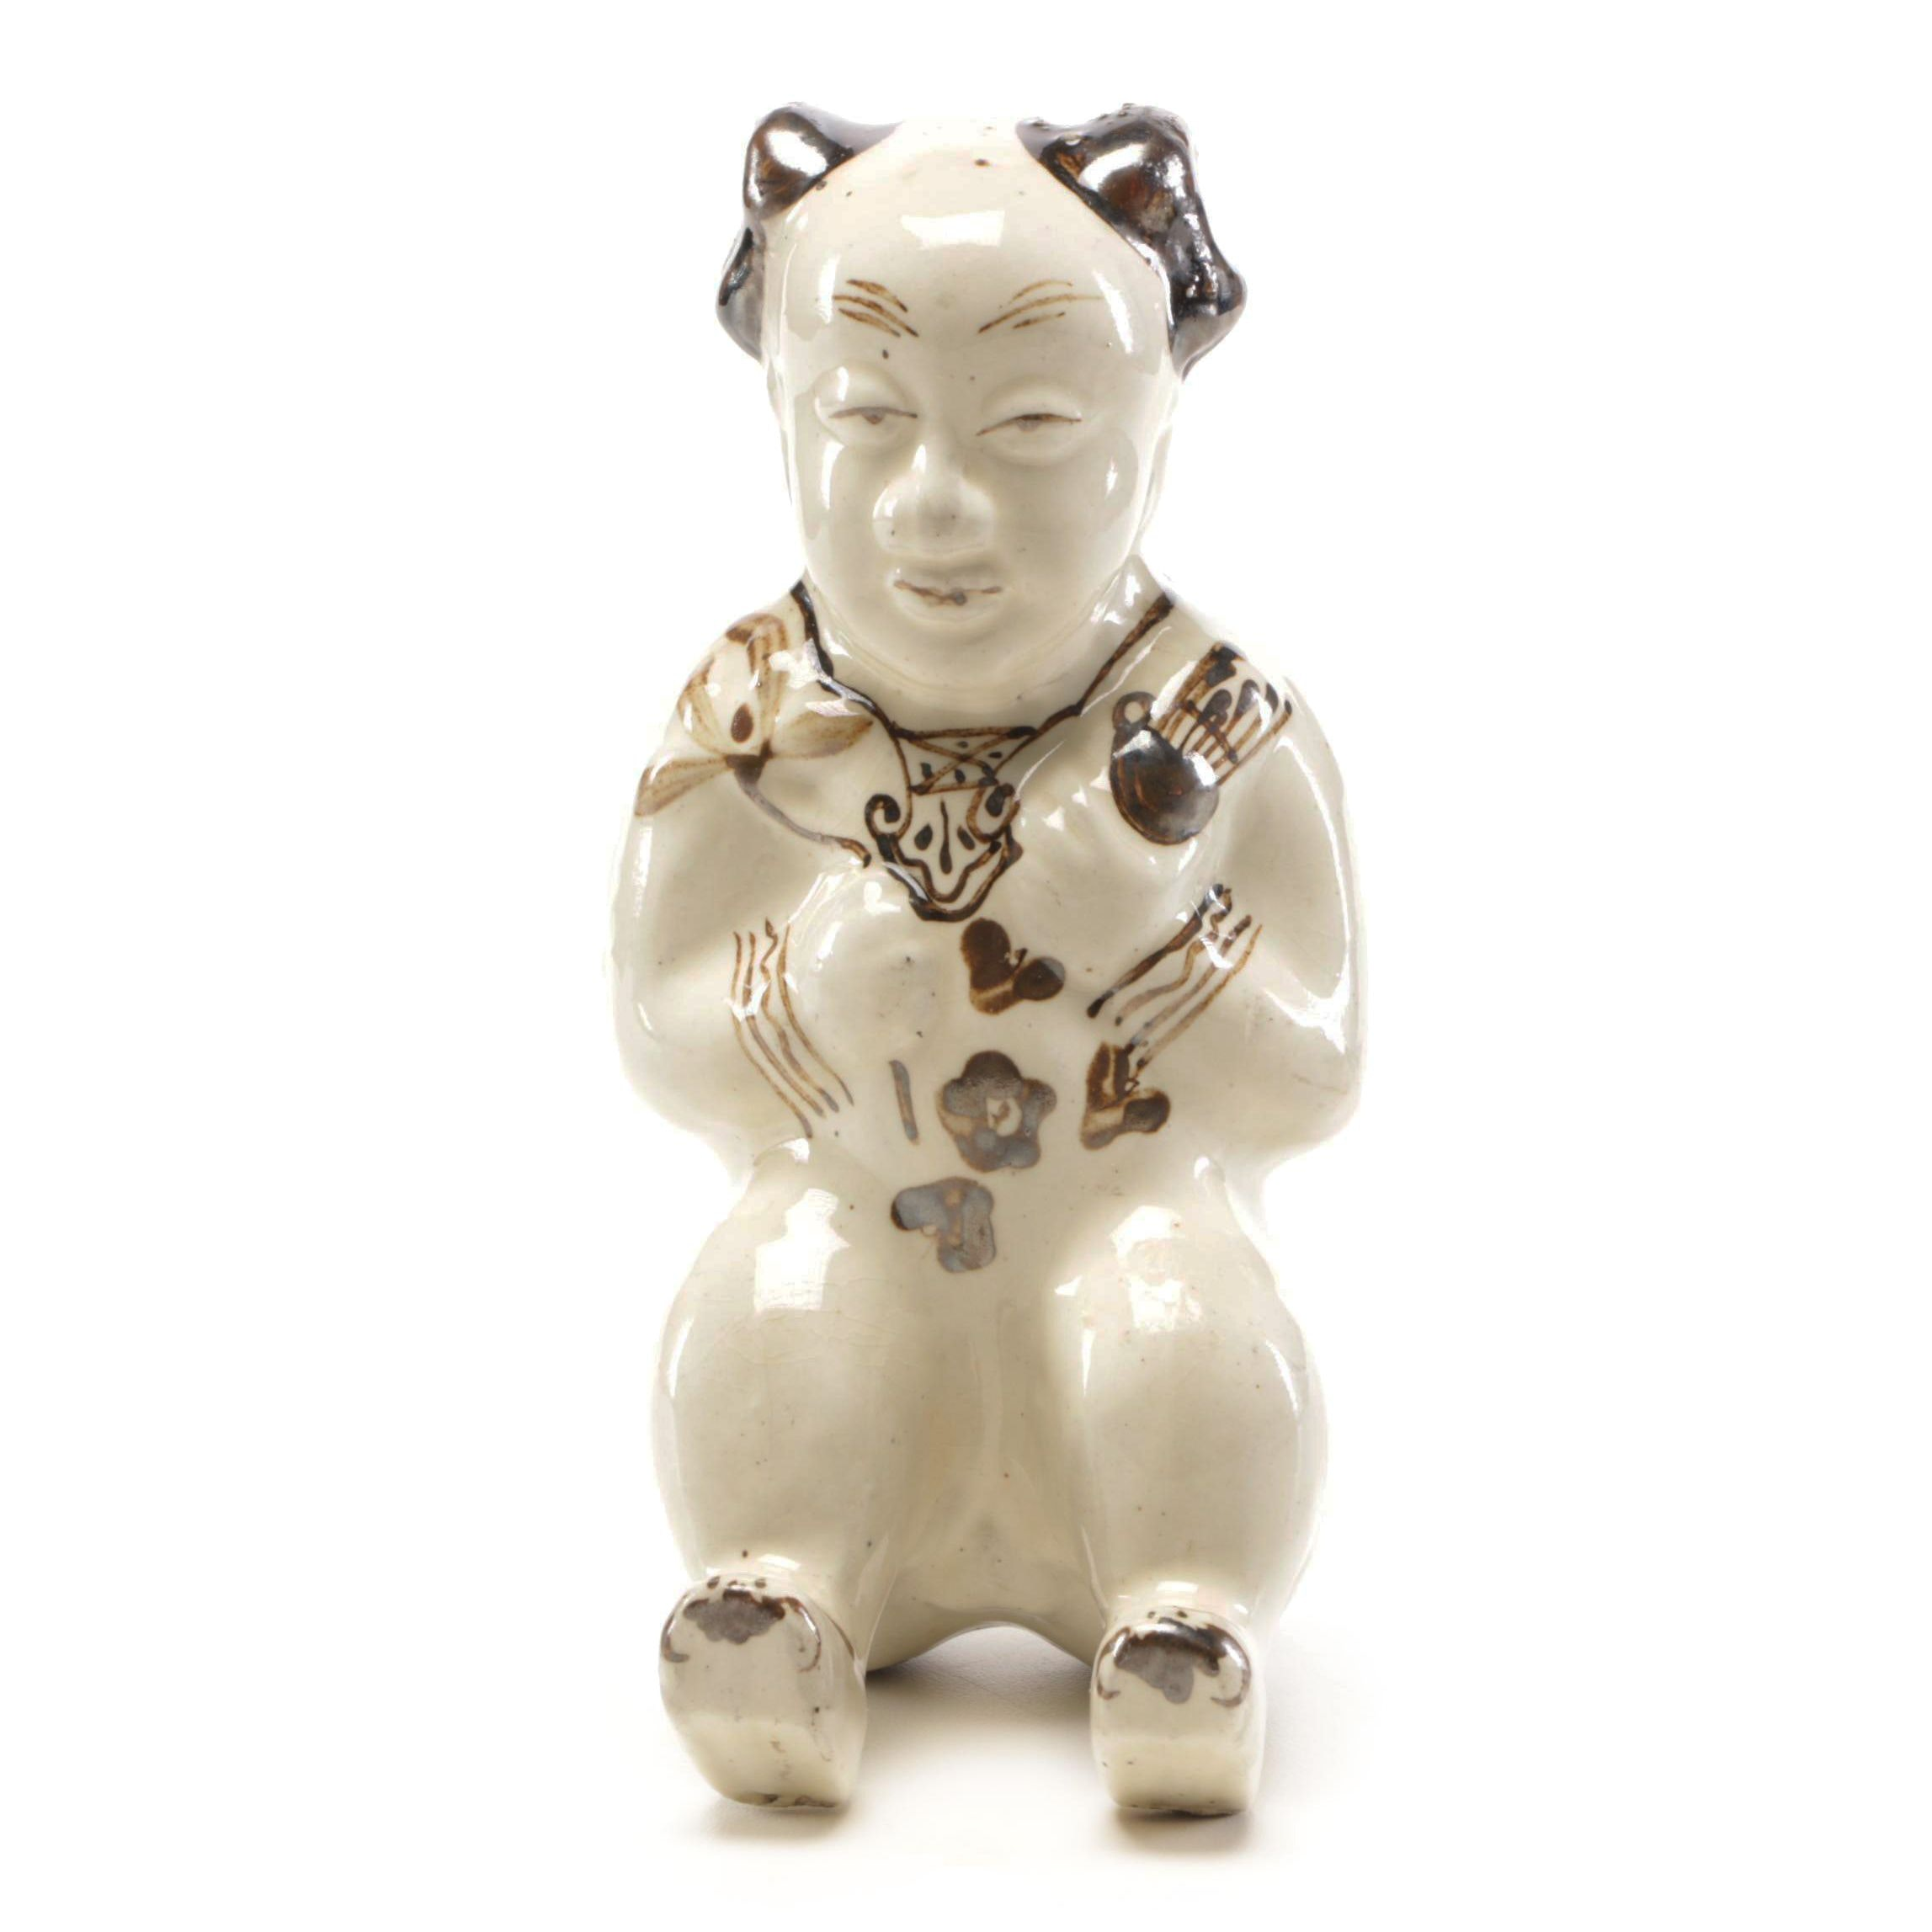 Chinese Ceramic Figurine of Sitting Man